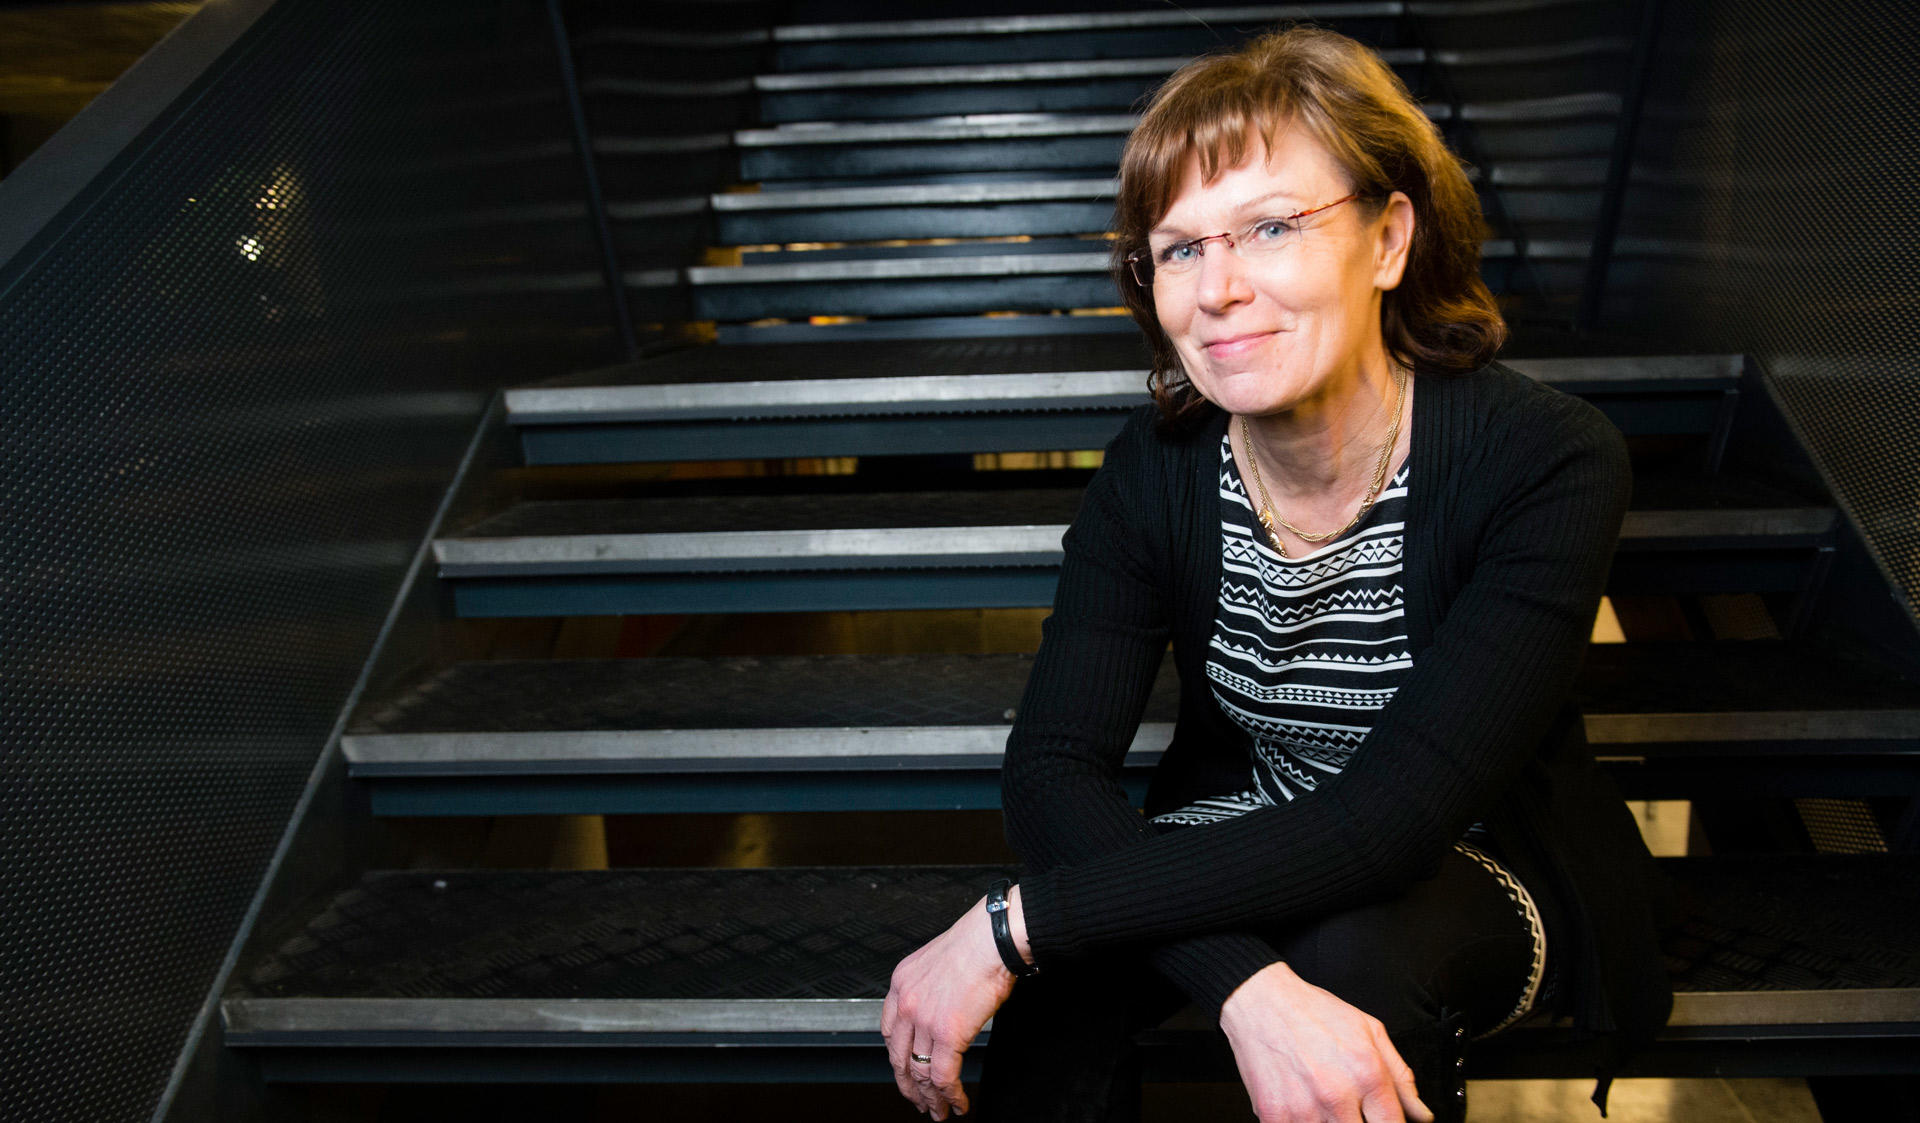 Dean Ritva Toivonen, Faculty of Agriculture and Forestry, University of Helsinki